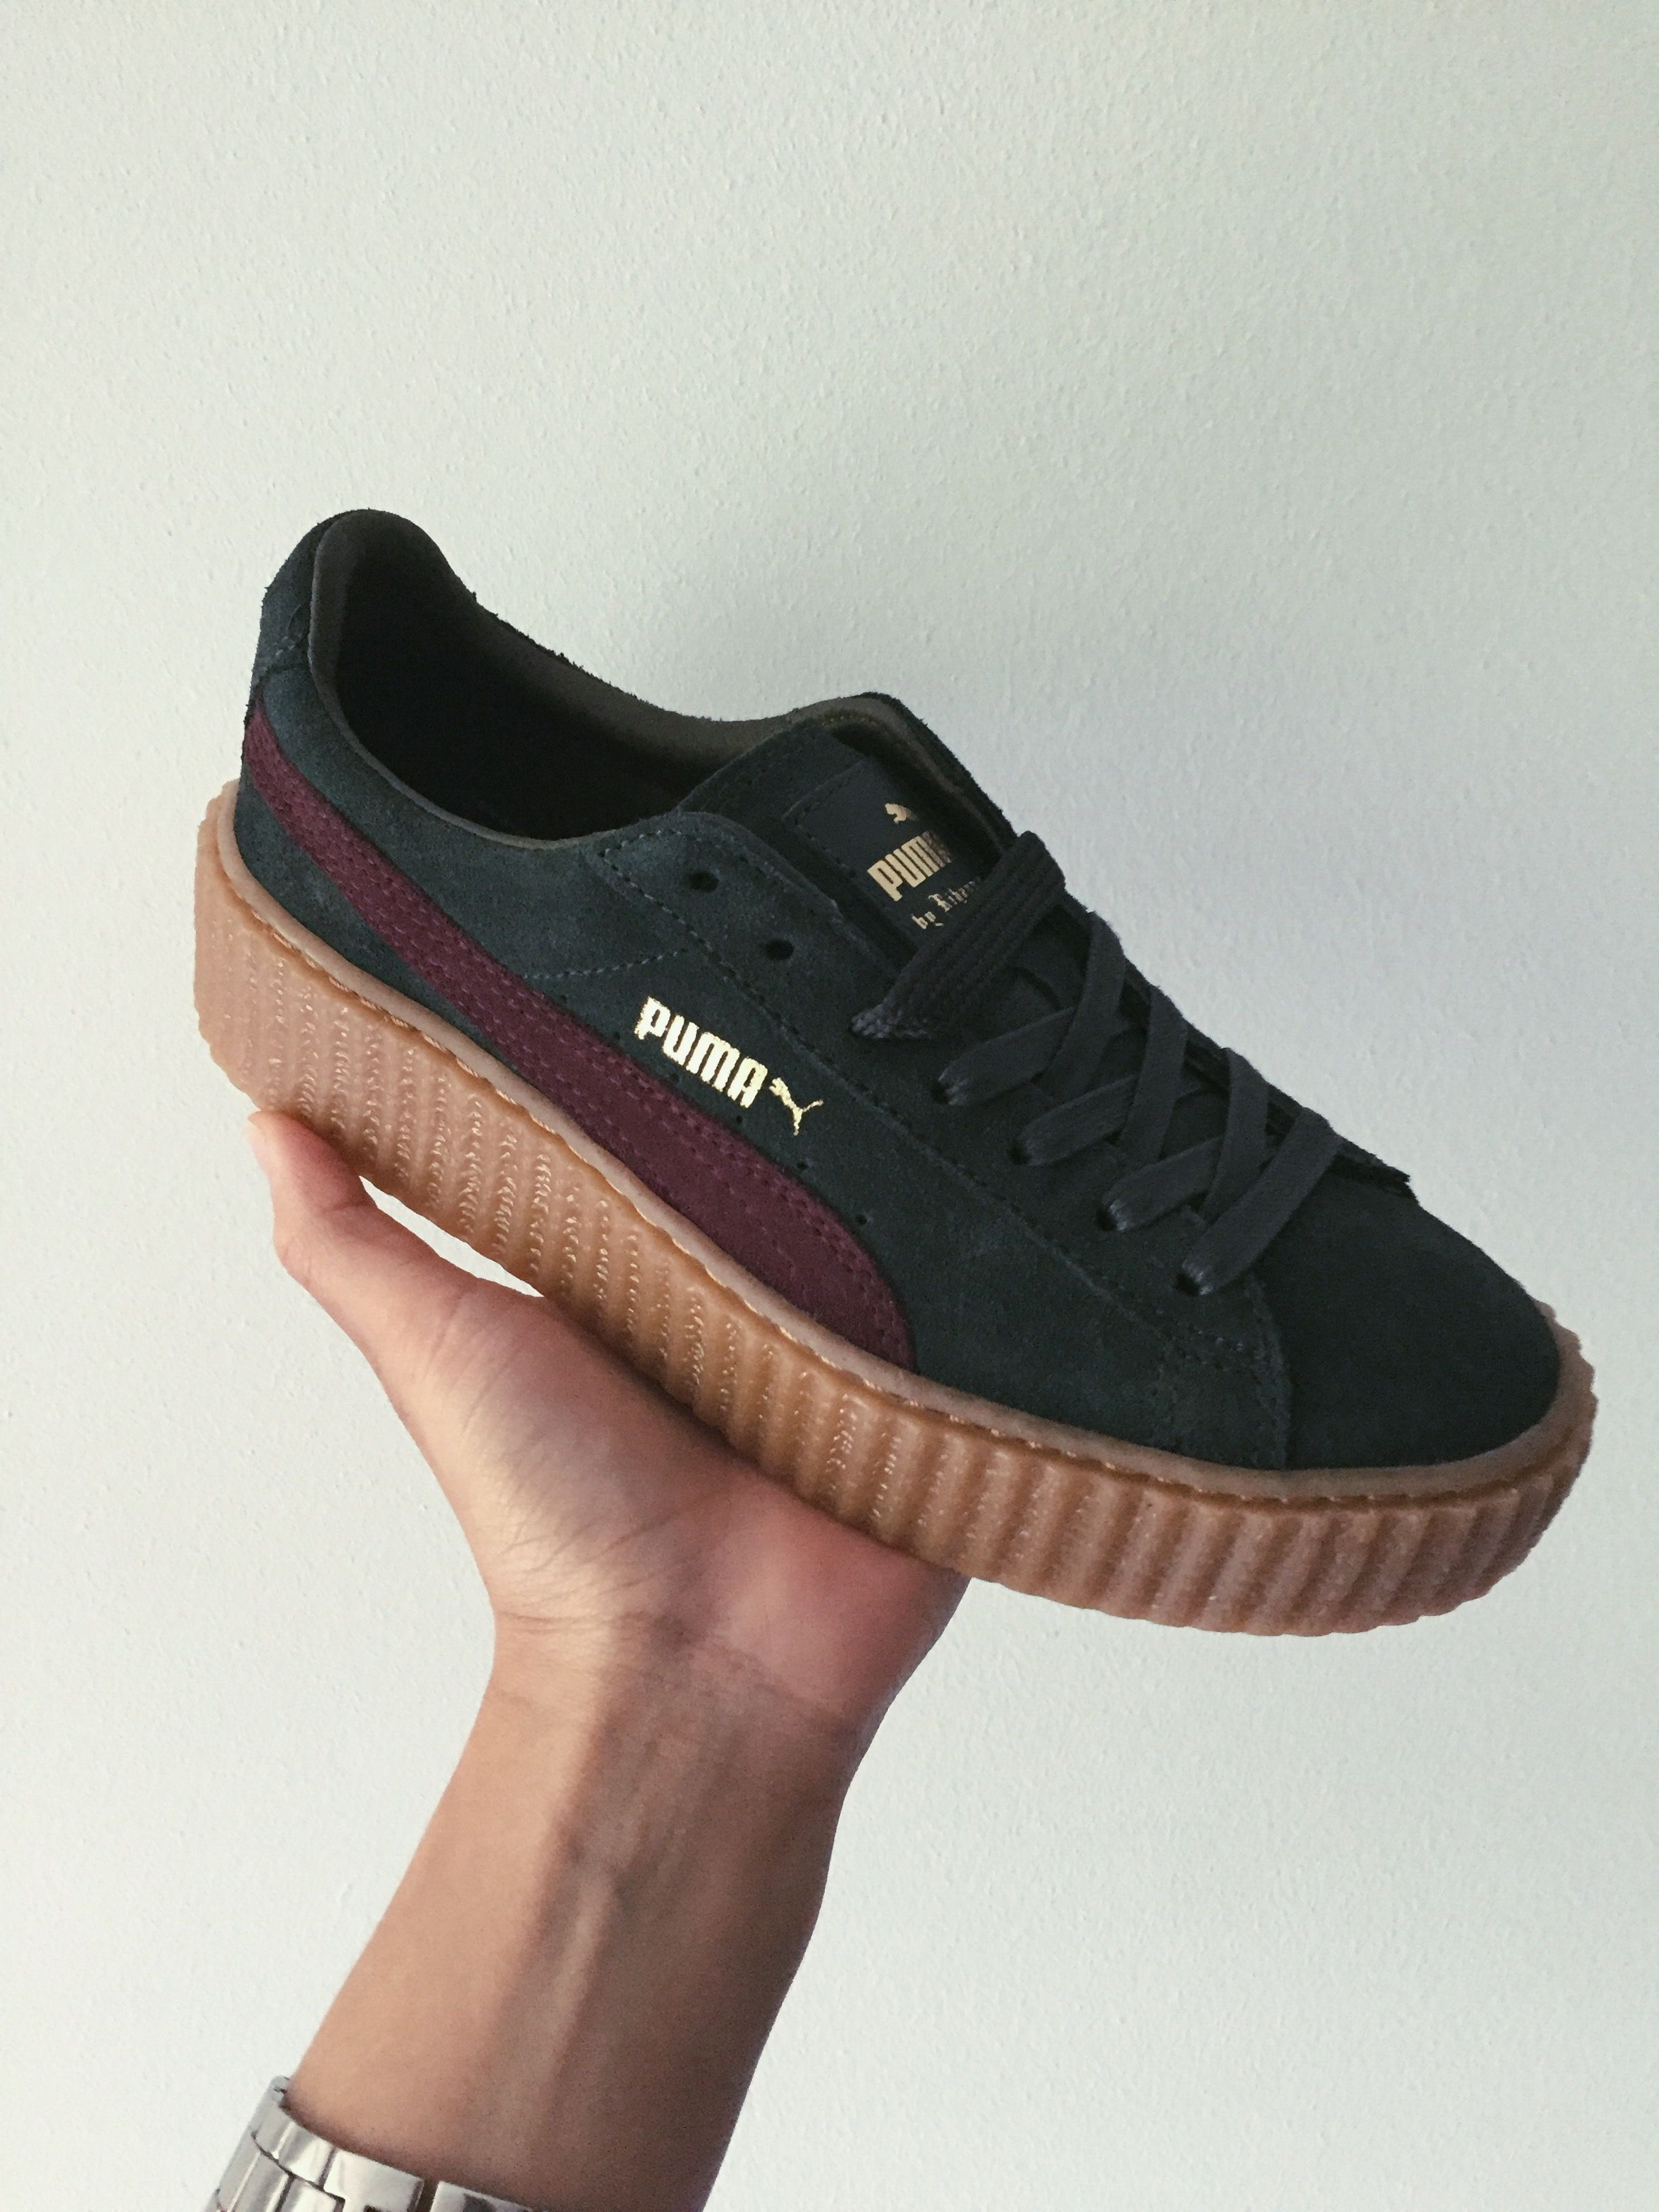 sale retailer f0d41 c1607 promo code for puma creeper hvid and sort mold 300da 04dfe